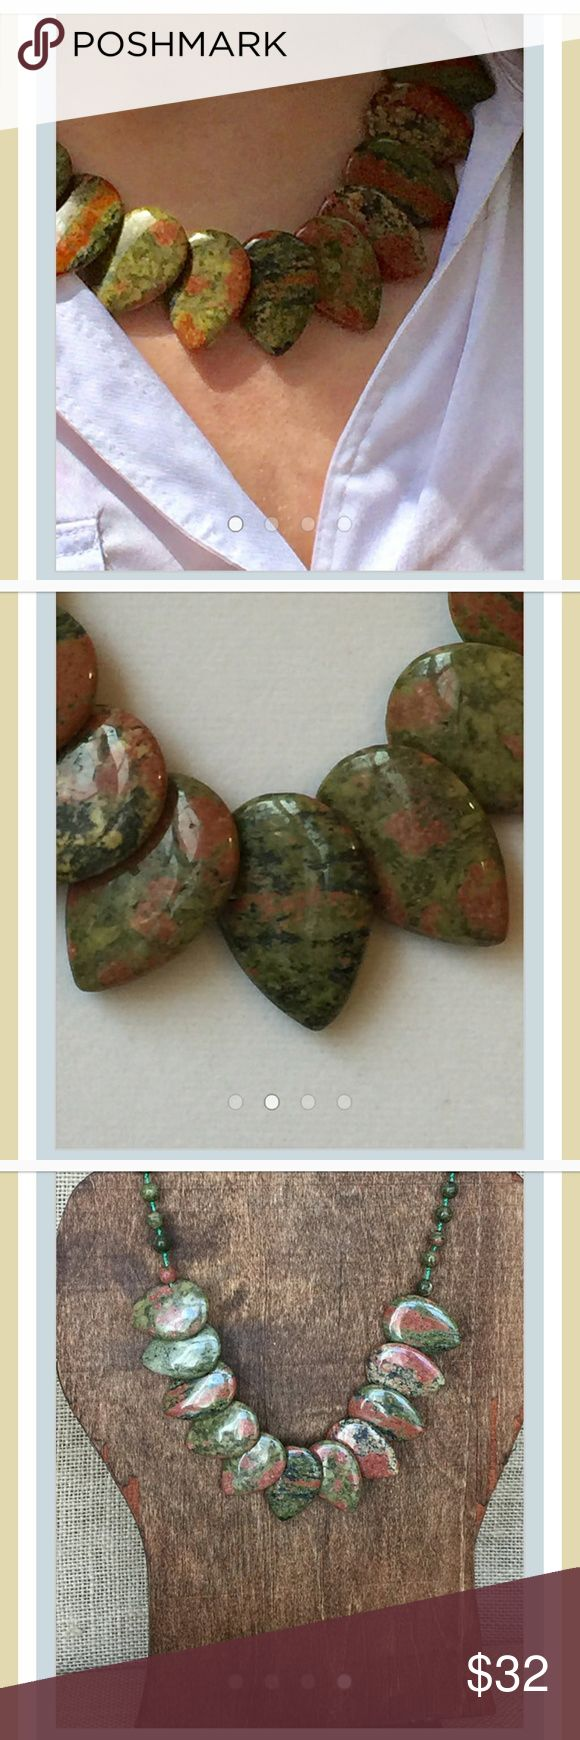 Unakite Layered Necklace Beautiful rust and moss greenmingle in multi-layers of rich Unakite.This custom made necklace is very unique, and a great Fall piece. Length: 18 in Country of Origin: South Africa Jewelry Necklaces